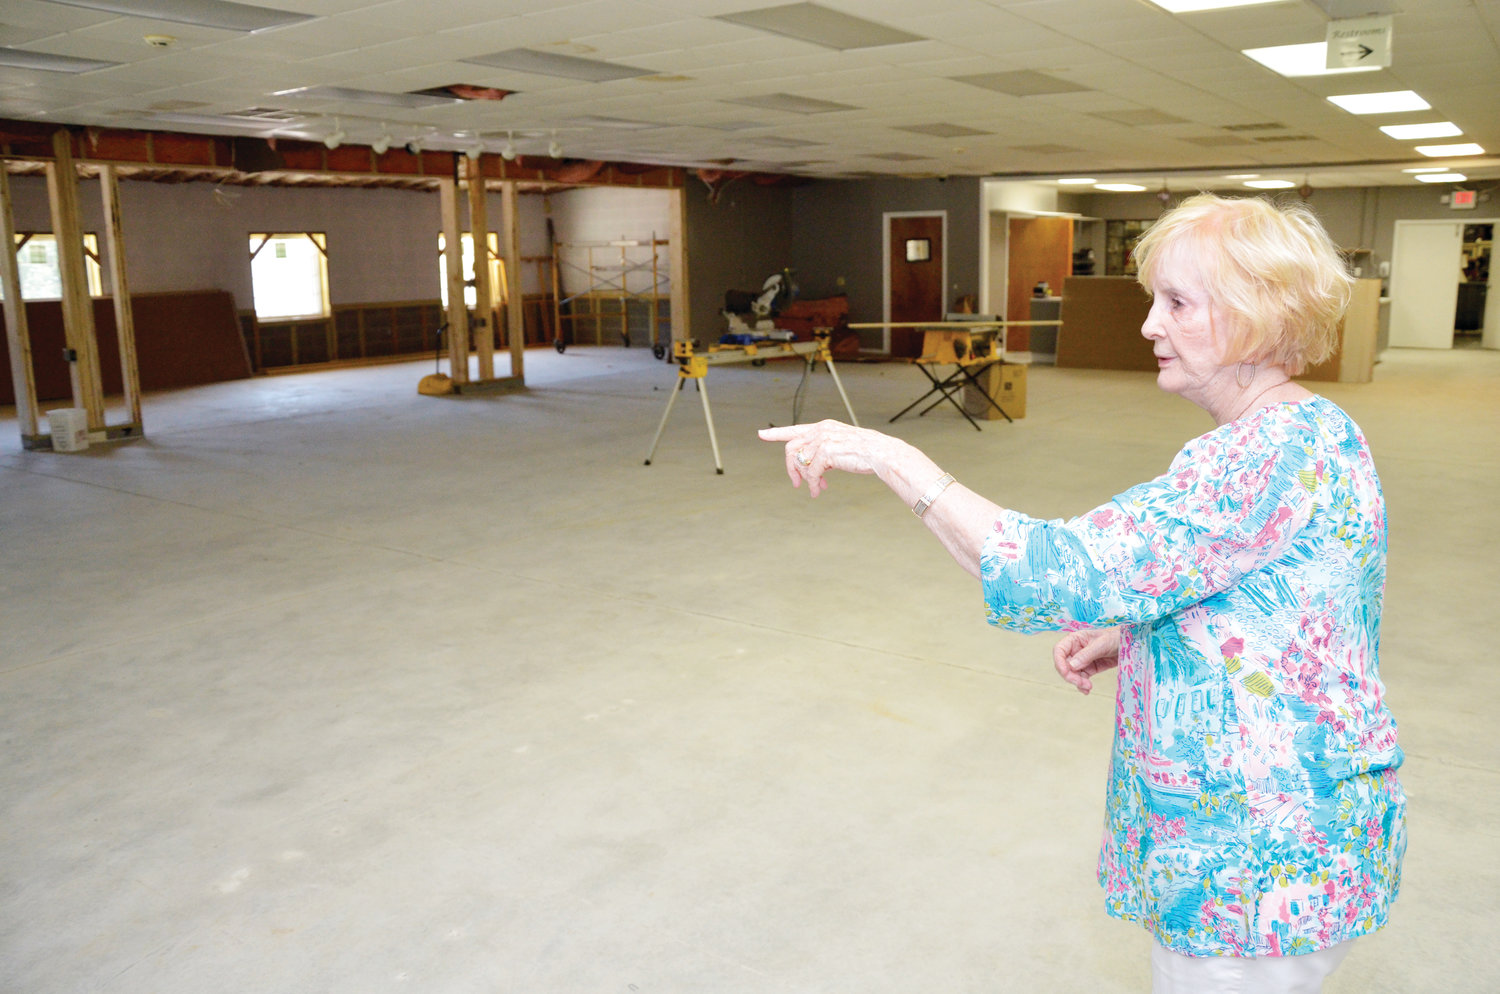 Berta Lou Scott, co-owner of Southern Supreme Fruitcake, surveys the business new showroom area under construction. The space will provide more room for customers to browse for the right gift items for friends and family.